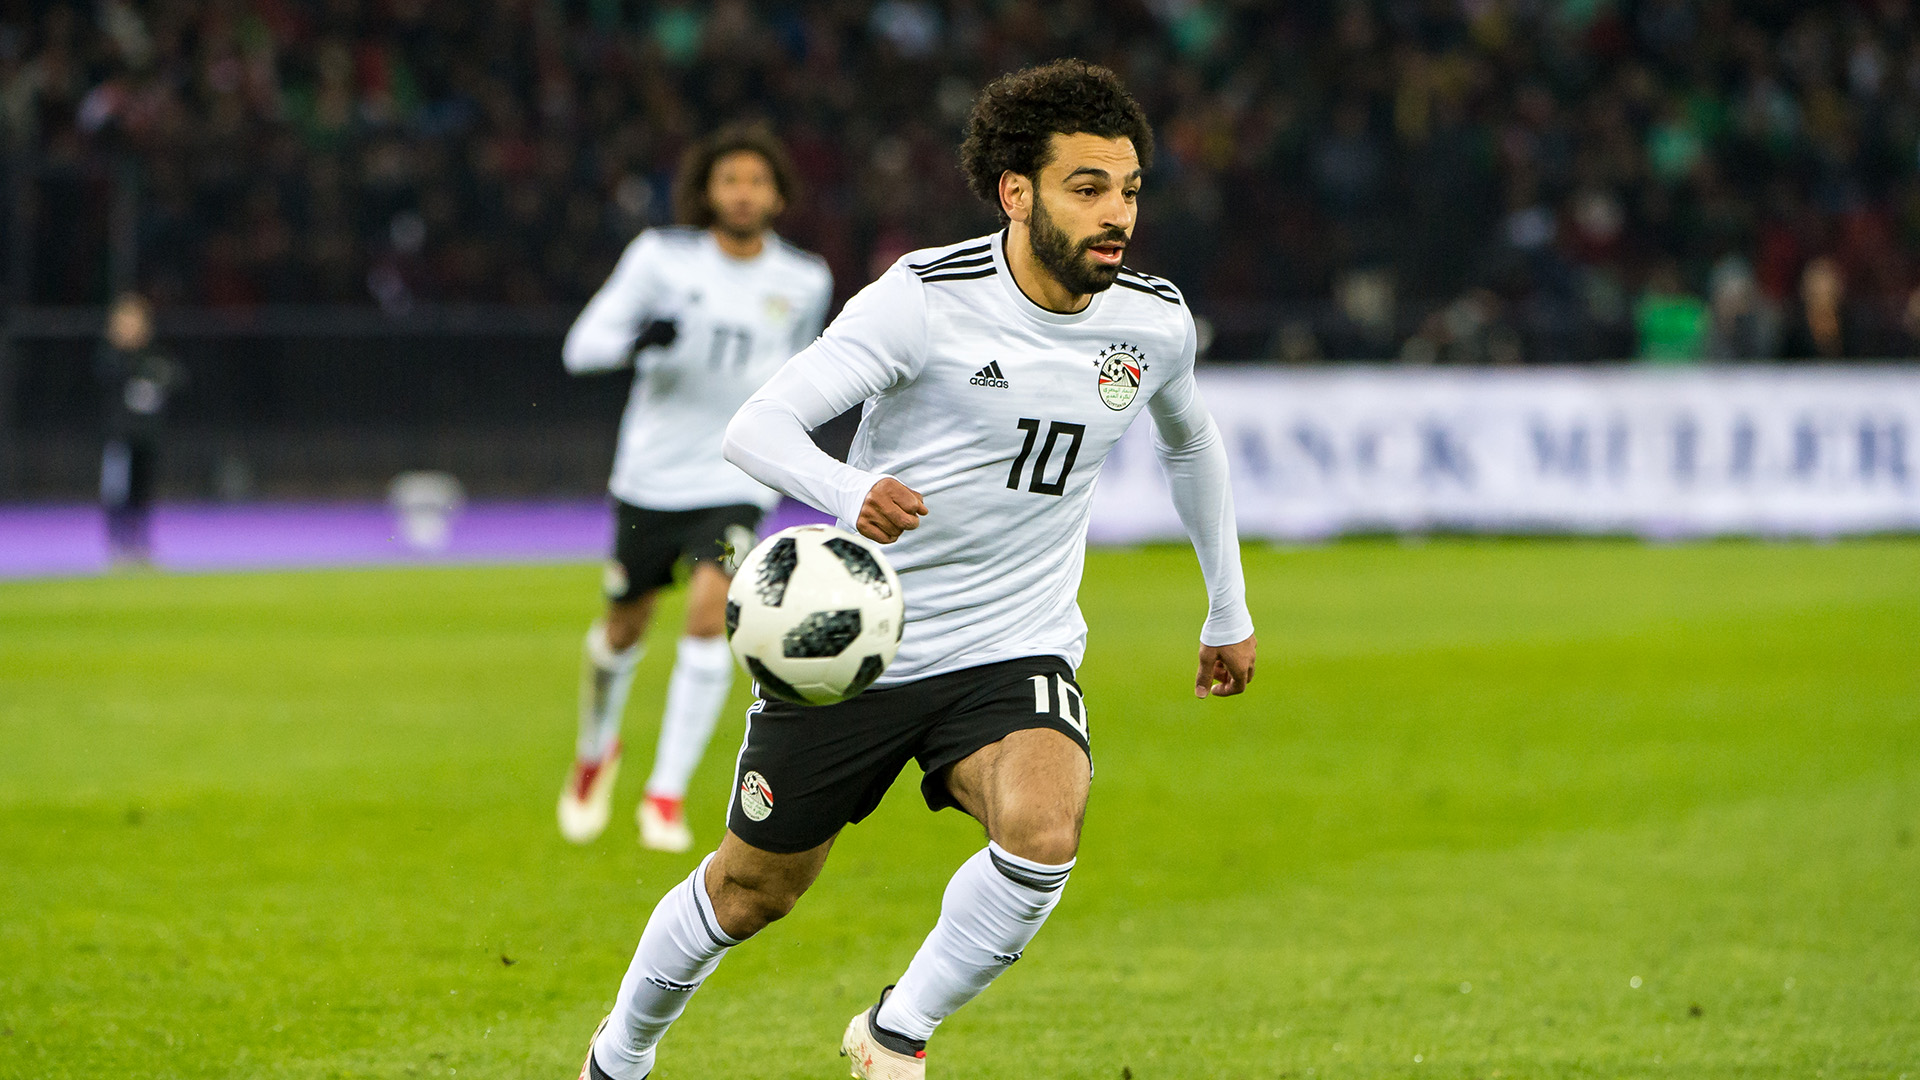 Live score, Mohamed Salah team news and latest updates